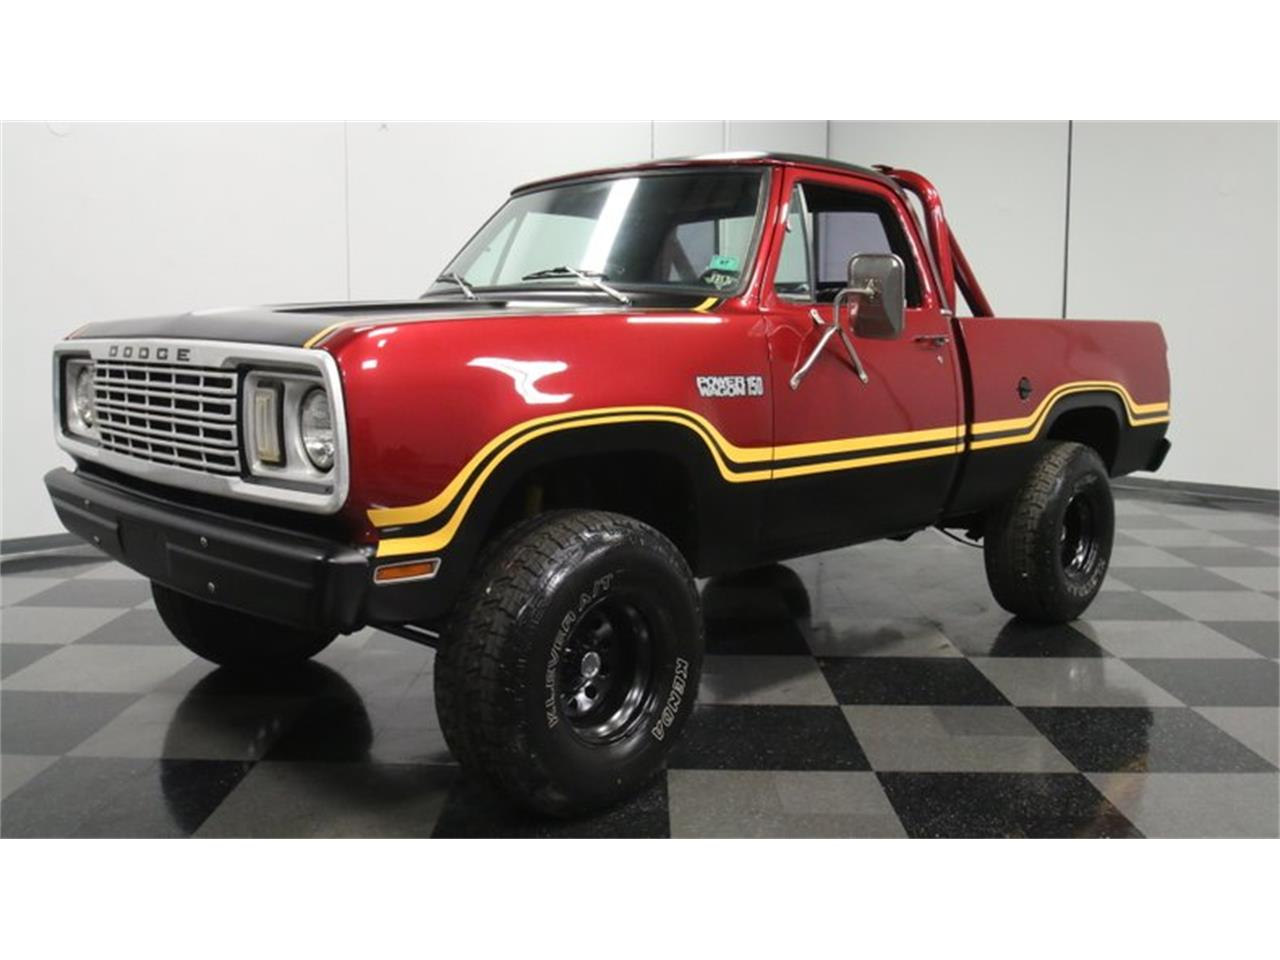 1978 Dodge Power Wagon for sale in Lithia Springs, GA – photo 6